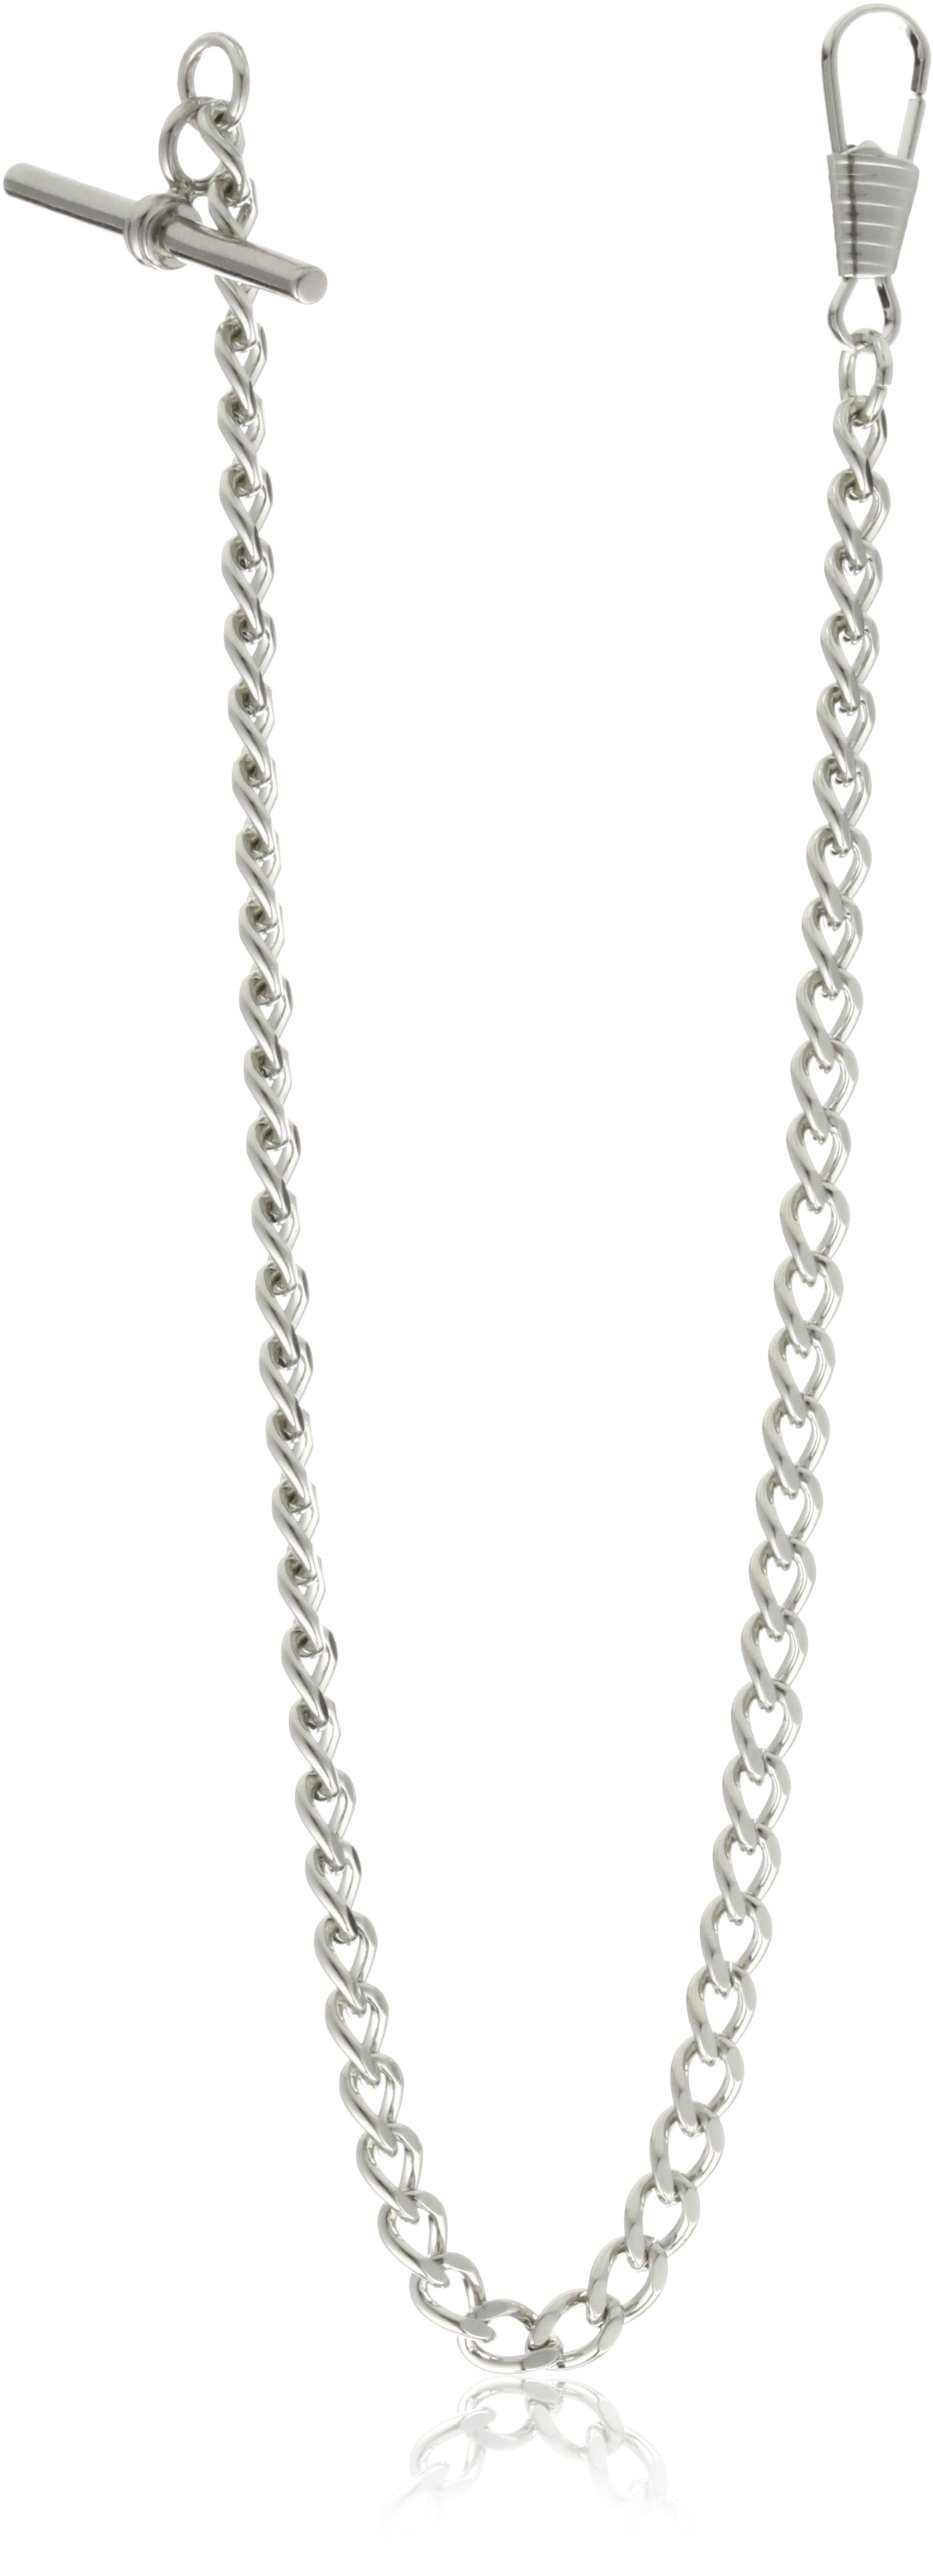 Charles-Hubert, Paris 3910-W T-Bar Pocket Watch Chain